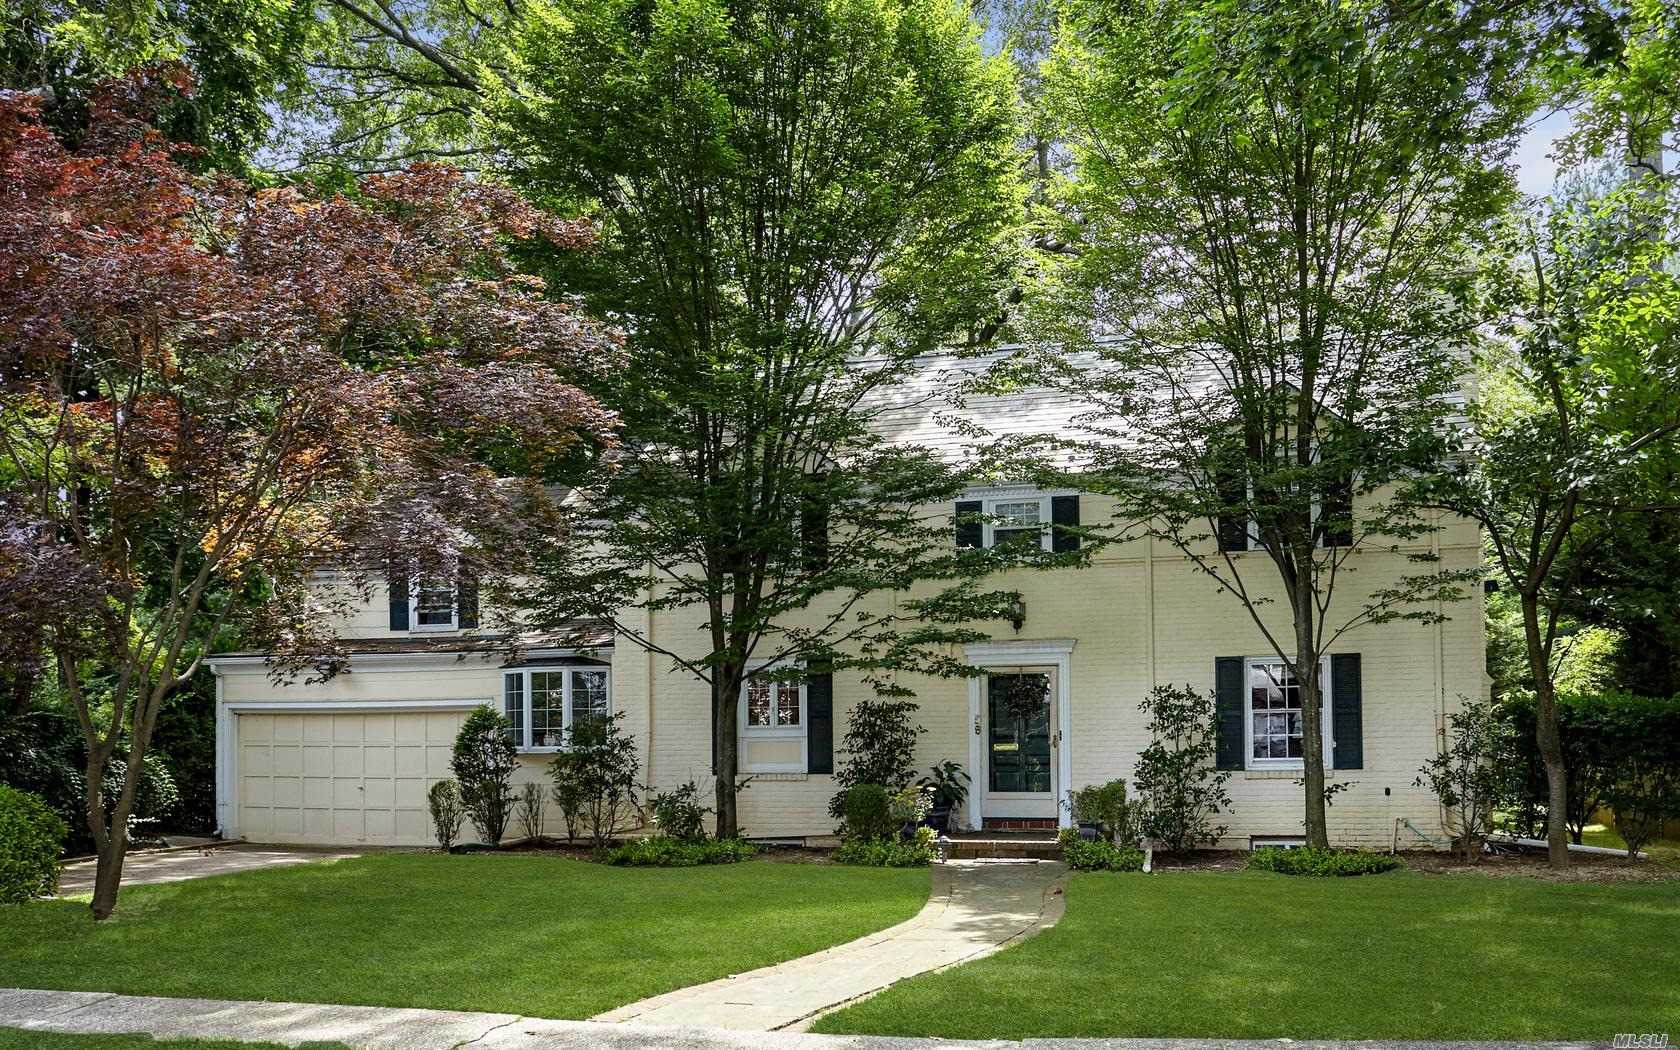 Gracious & Grand Old Canterbury Gem Perfectly Poised On A Lush 1/4 Acre. Located On A Beautiful & Serene Exclusive Dead End St Where Beauty Abounds. This Stately Classic Brick Colonial Boosts 5 Bedrms/4 Full Baths, Lrw/Fp, Great Rmw/Fp, Office, Br & Full Bath Complete The 1st Fl. 2nd Has 2 Master En Suites, 2 Bedrooms, & 4th Full Bath. Ideal For Entertaining.